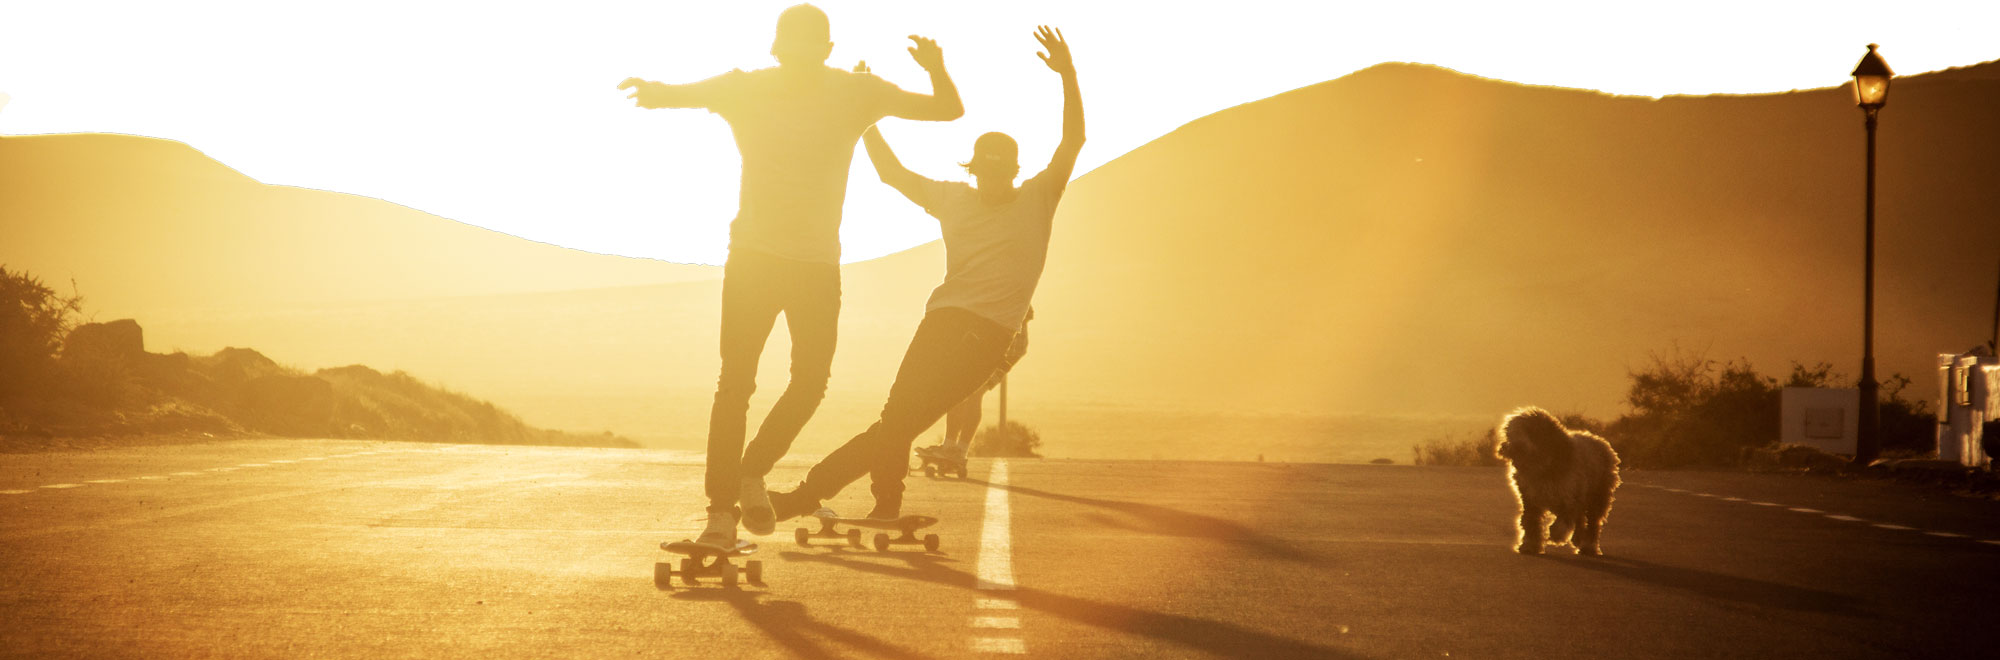 Longboard Training mit Personal Coach